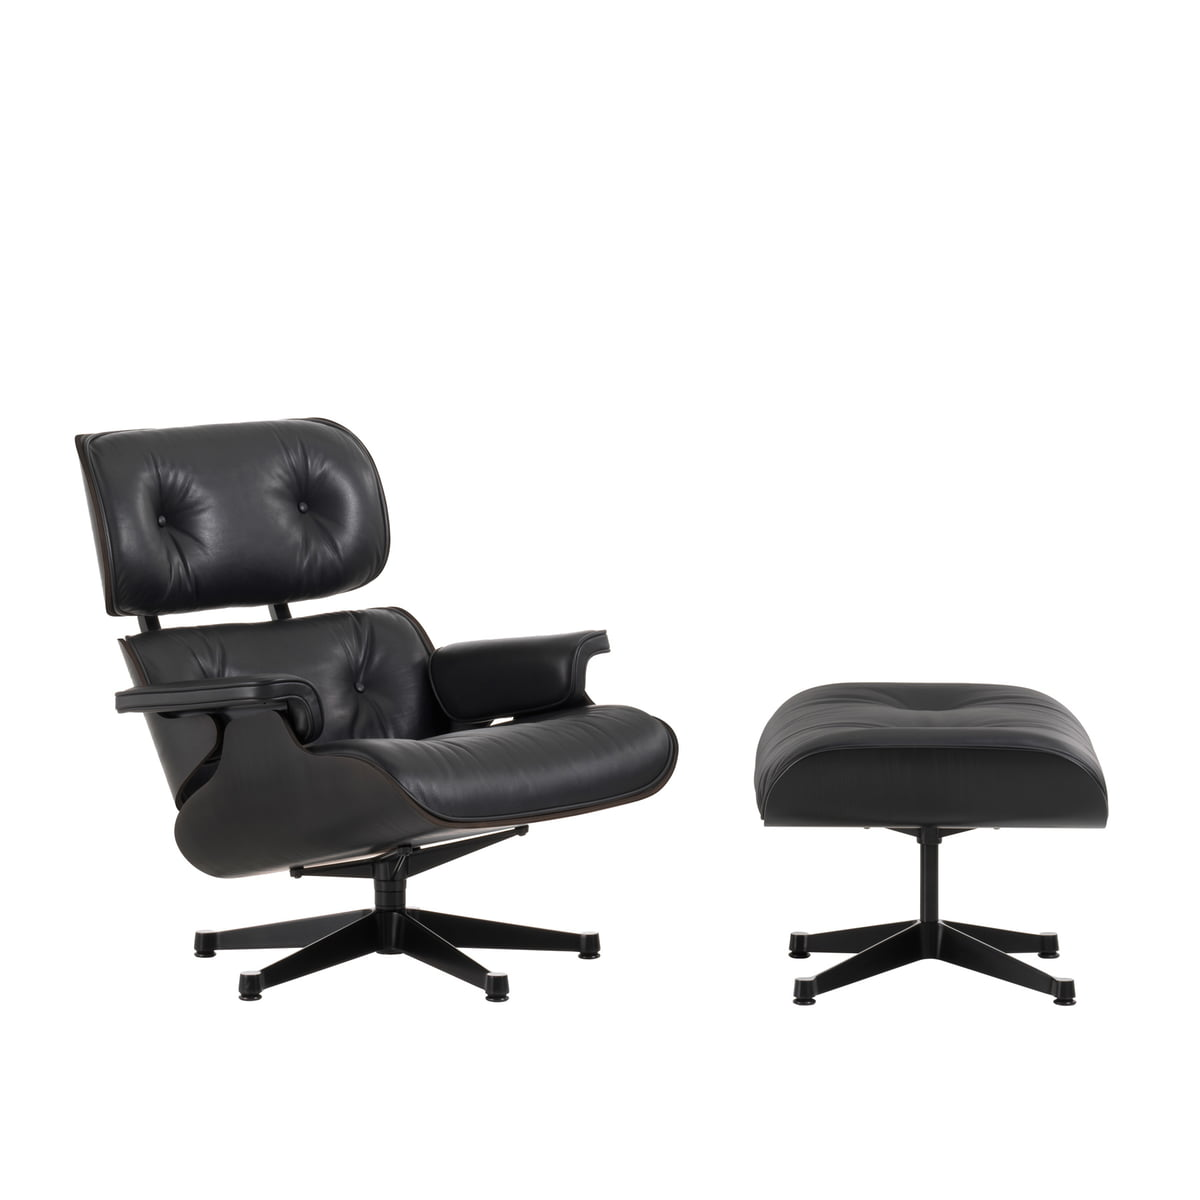 Vitra lounge chair ottoman in black ash for Vitra lounge chair nachbau